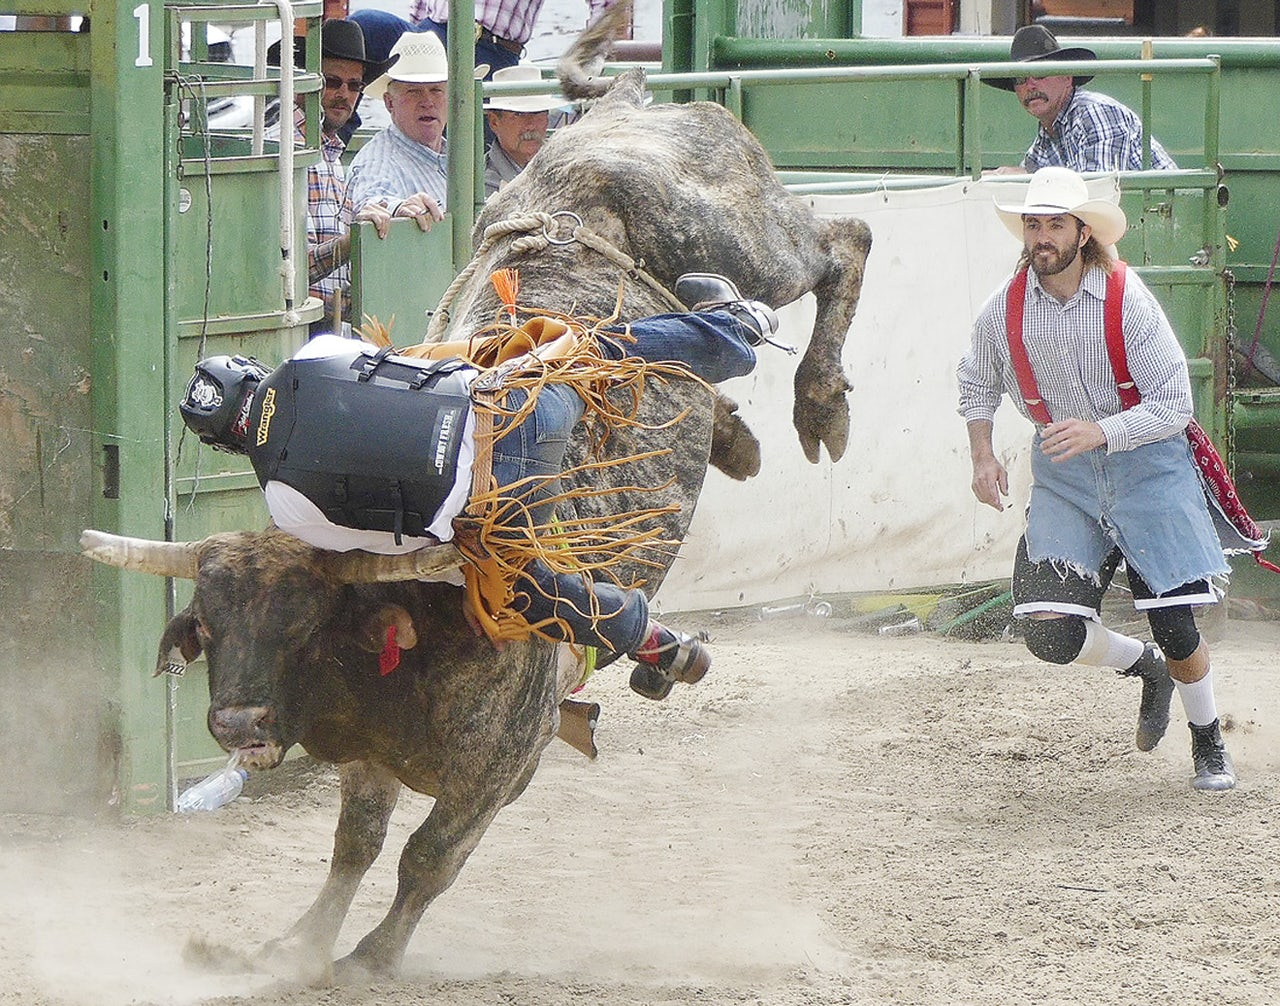 Jordan Valley S Big Loop Opens Rodeo Season Malheur